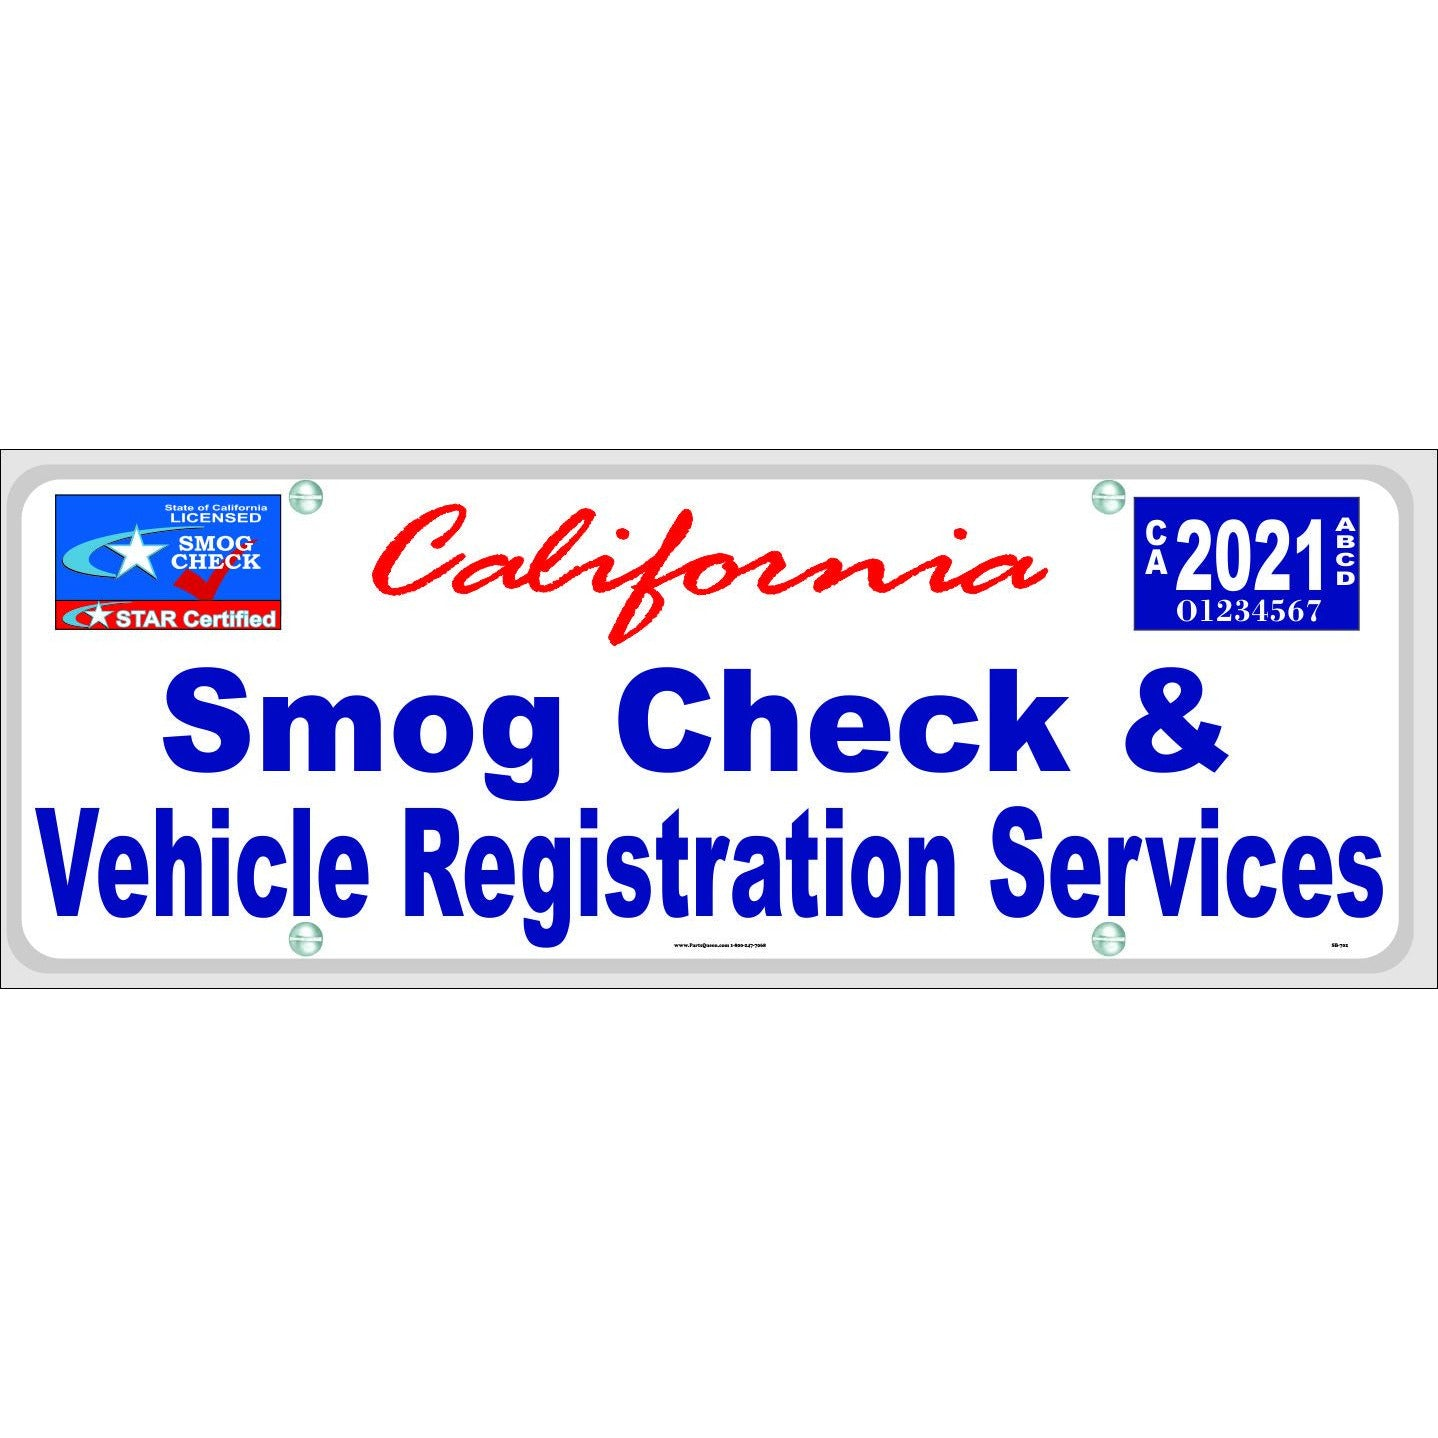 SB-702 SMOG CHECK & VEHICLE REFISTRATION SERVICES, STAR CERTIFIED